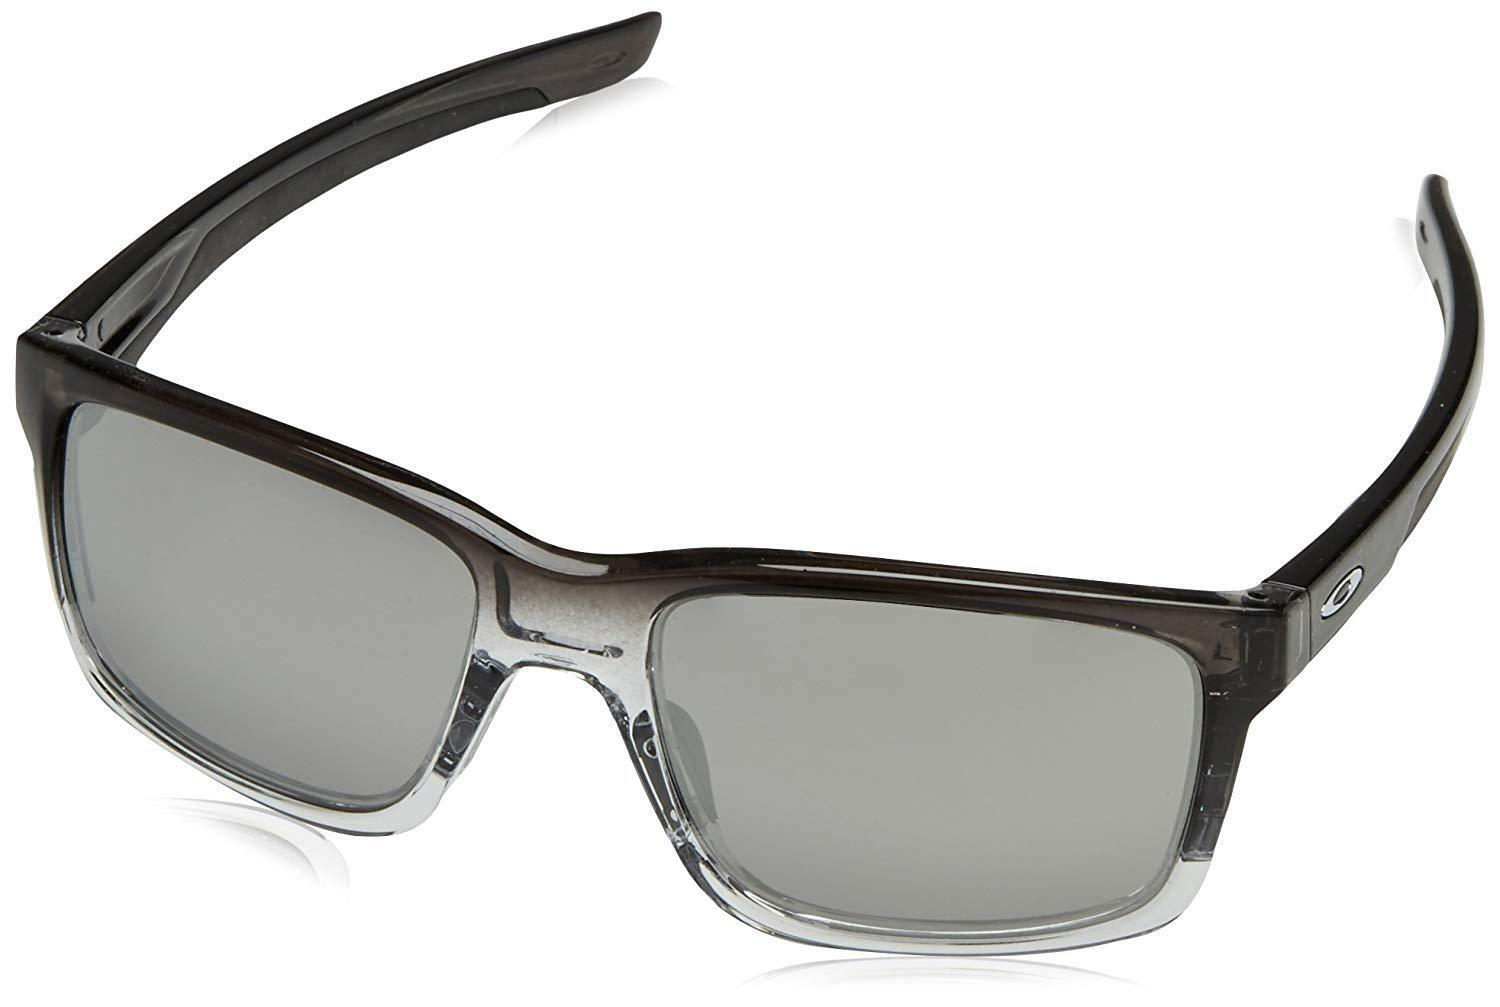 4b0db4a93b Details about Oakley Mainlink OO9264-13 Sunglasses Dark Ink Fade Chrome  Iridium Lens 9264 13